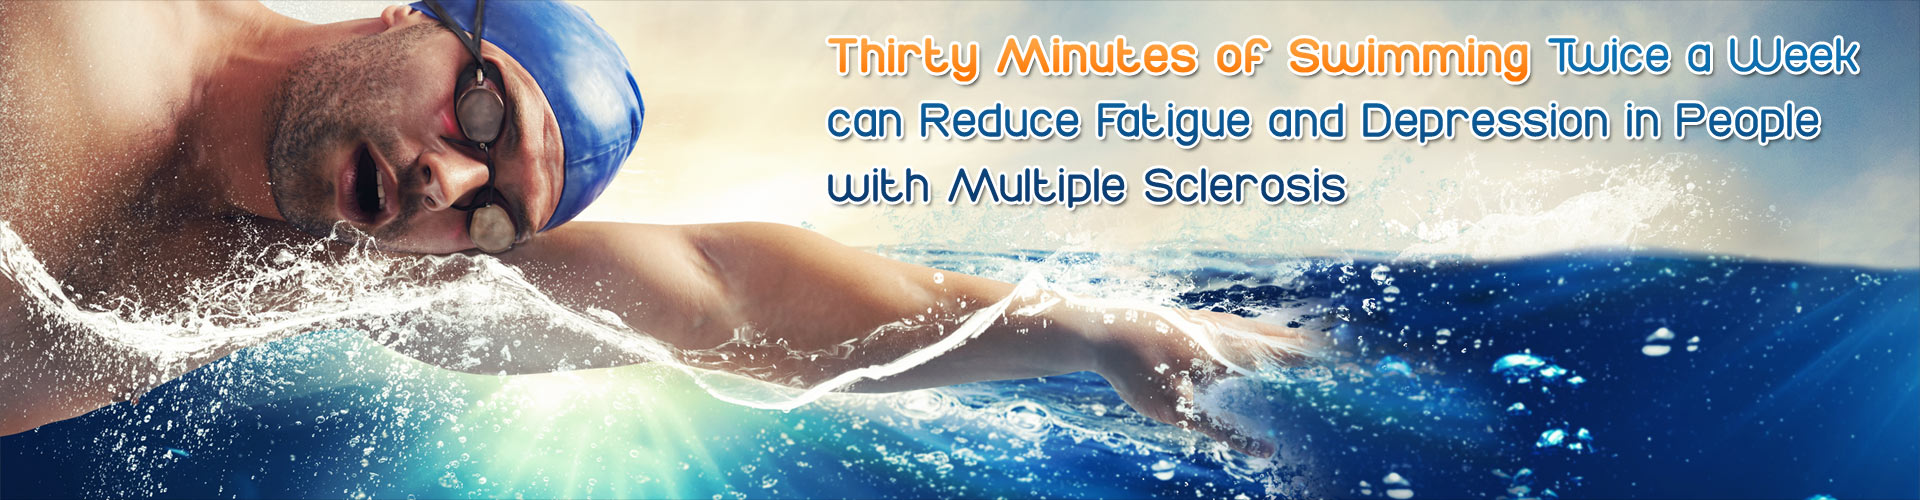 Thirty Minutes of Swimming Twice a Week can Reduce Fatigue and Depression in People with Multiple Sclerosis